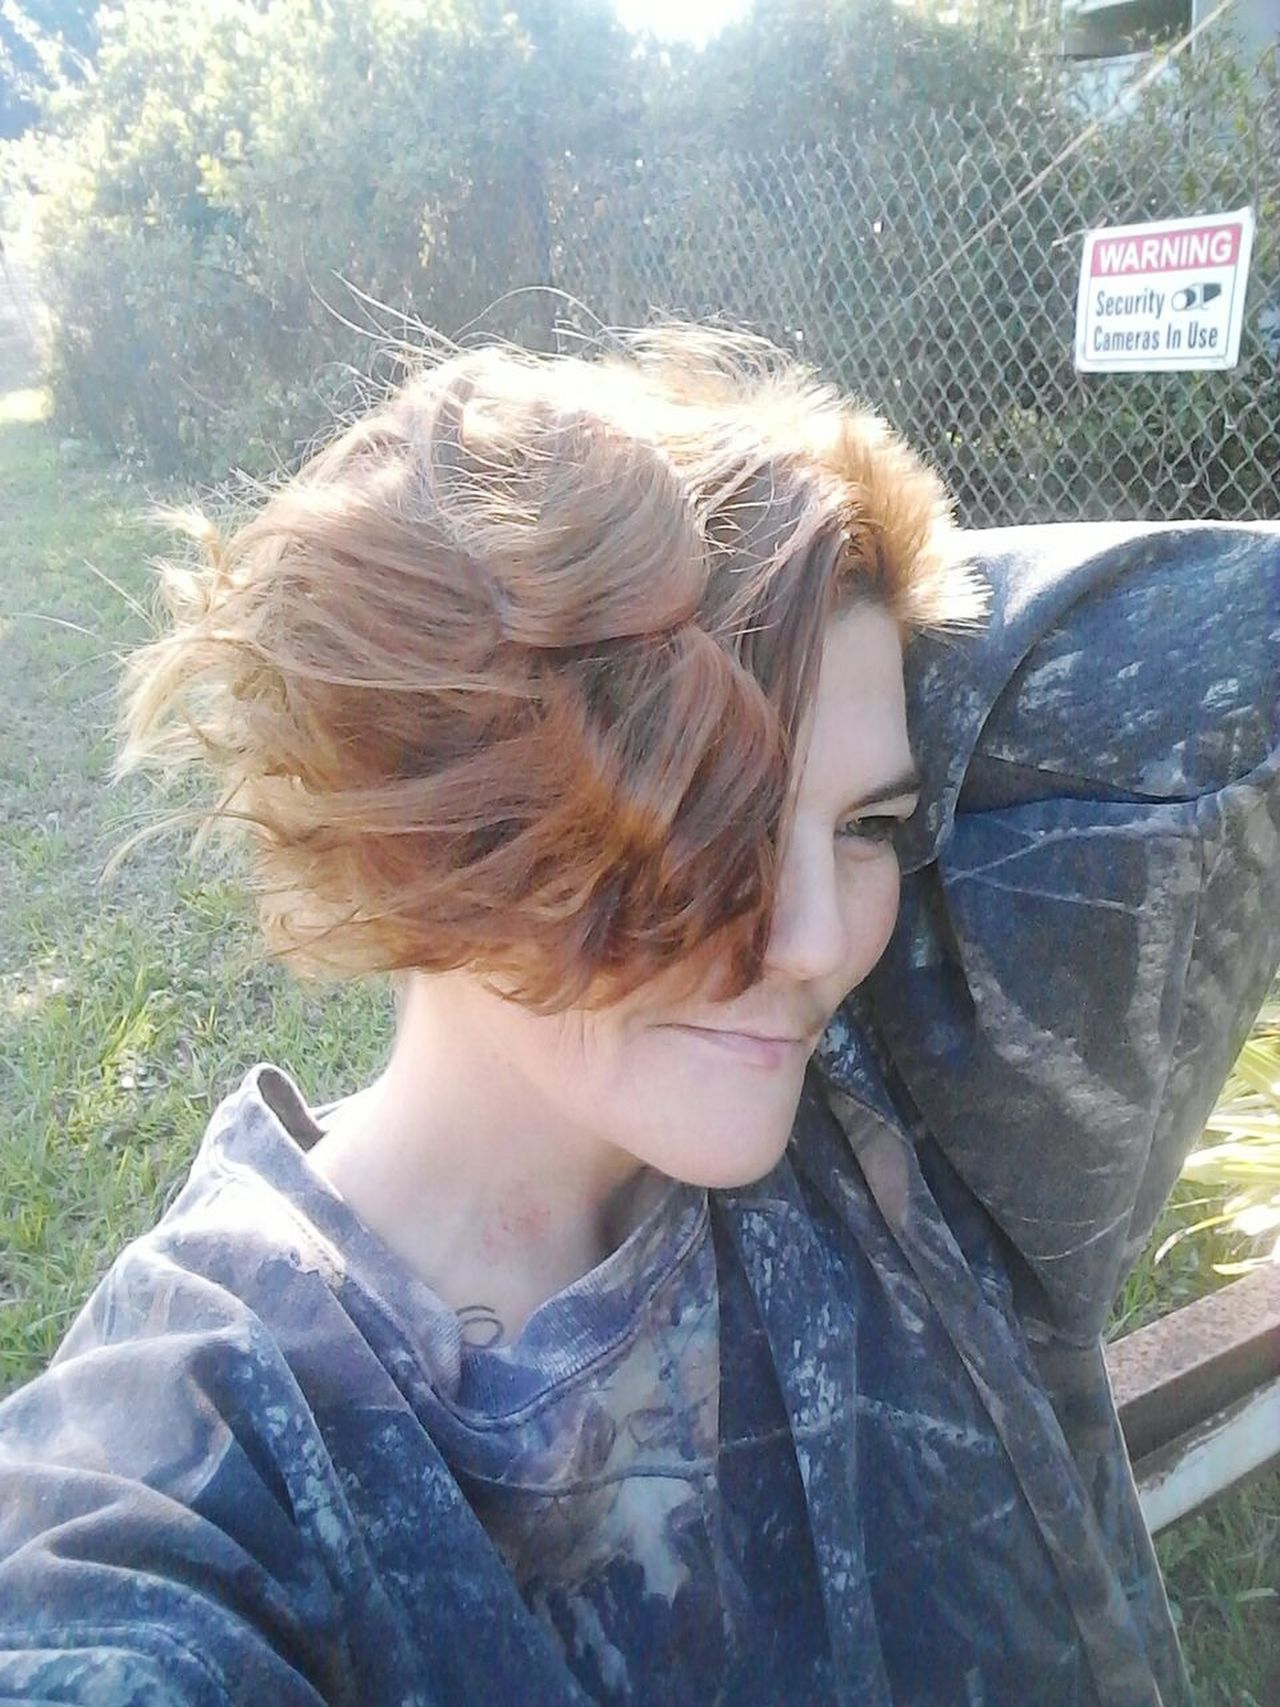 Fluffy hair day. One Person Outdoors Only Women One Woman Only Young Women Real People People Close-up Adults Only Adult Women Fluffy Hair Style  Happiness ♡ Grass All Natural No Makeup All Natural Pure Beauty!! Northside Jacksonville Florida